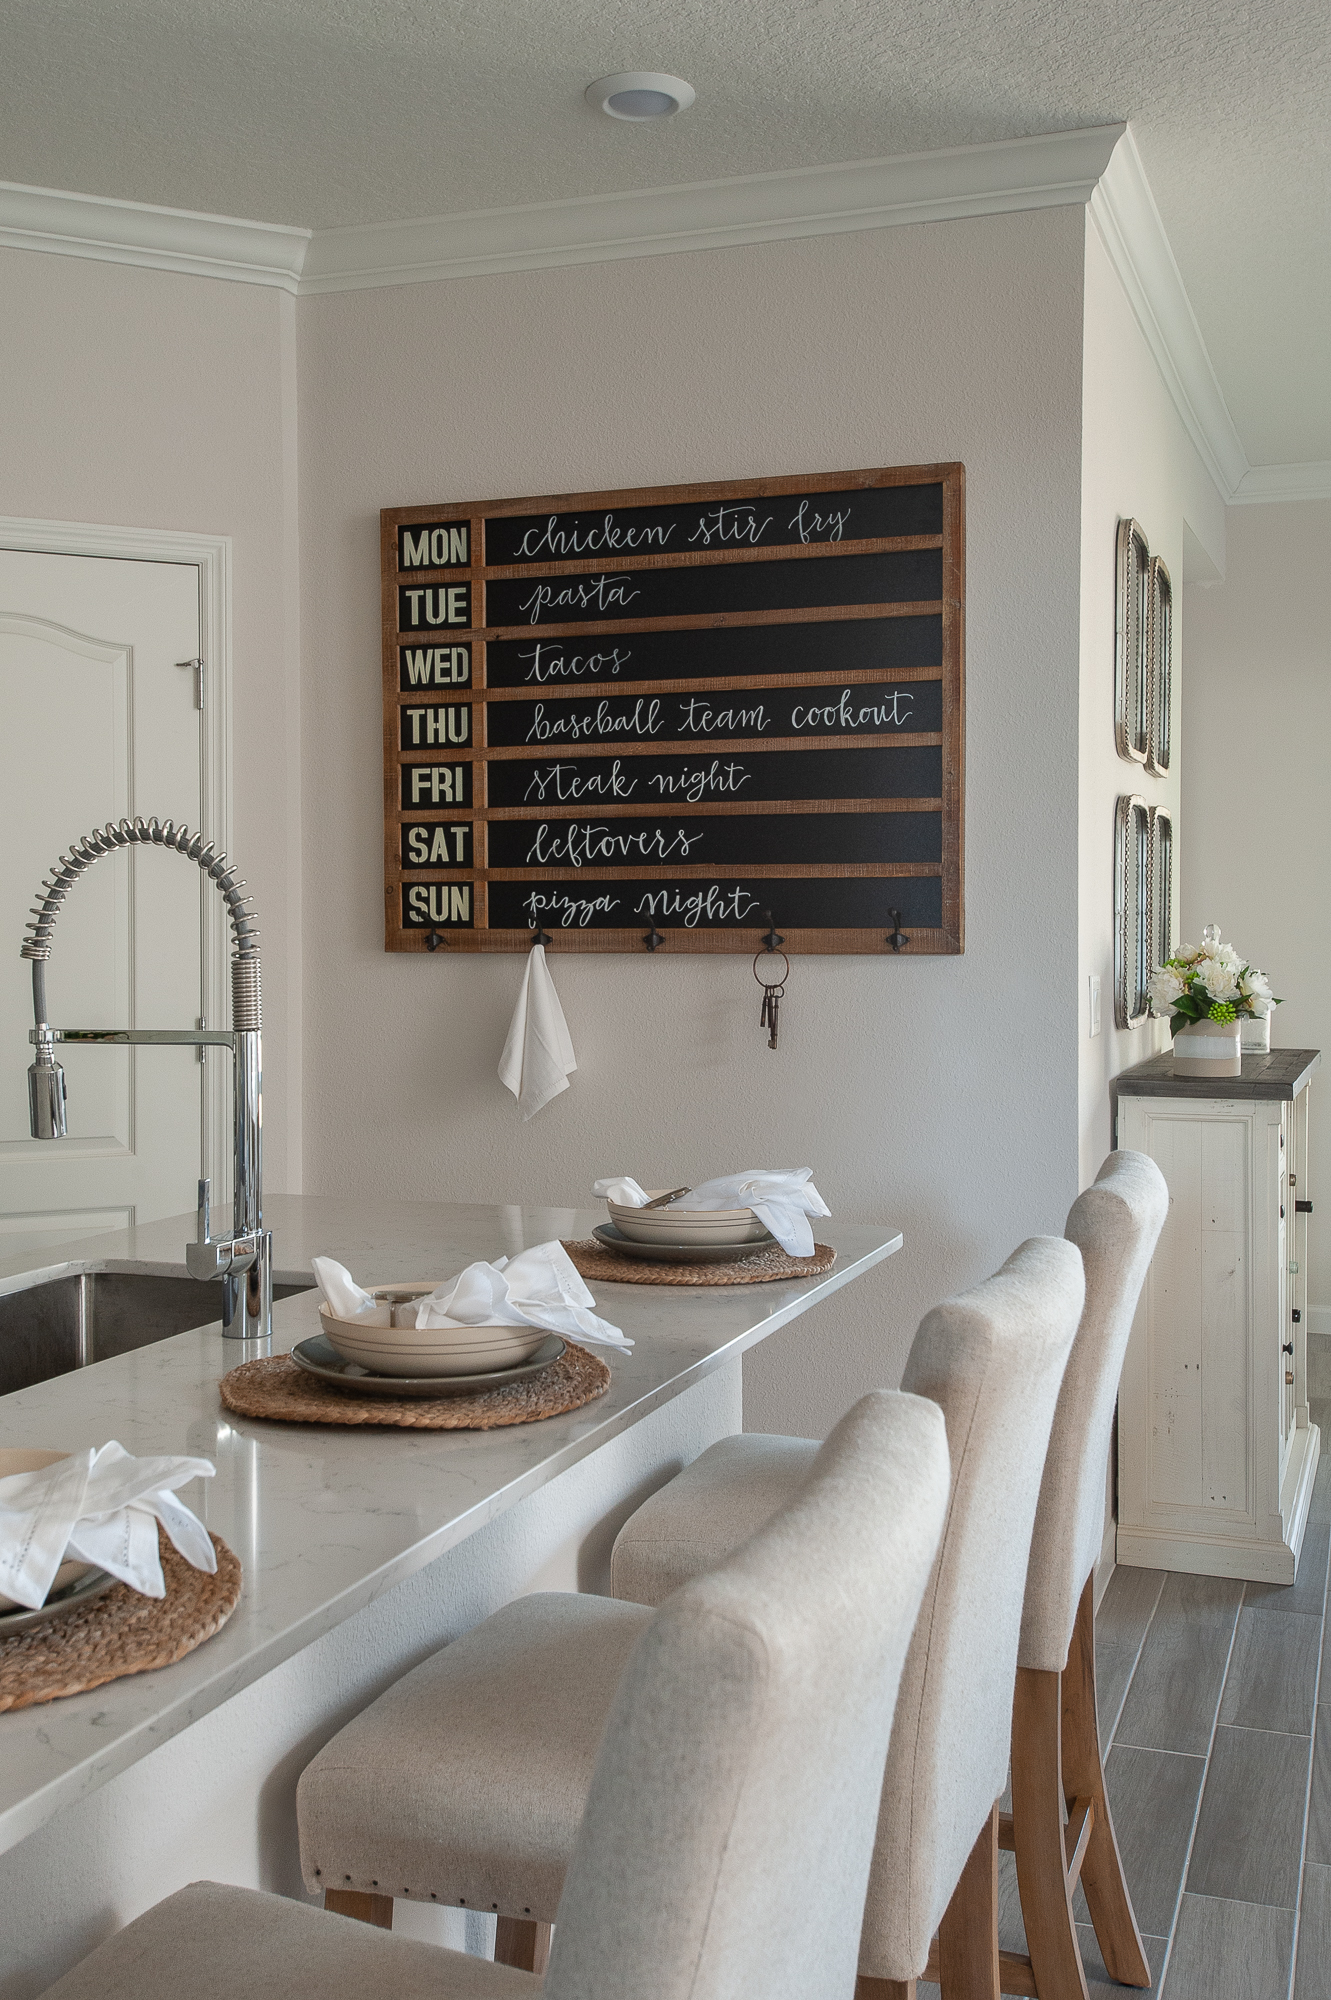 Micamy_Interior Designer_Design_Interior_Model_Merchandising_Kitchen_Grey_Cabinets_Forty West_Lennar_Place Setting_ChalkboardMenu_Faucet.jpg